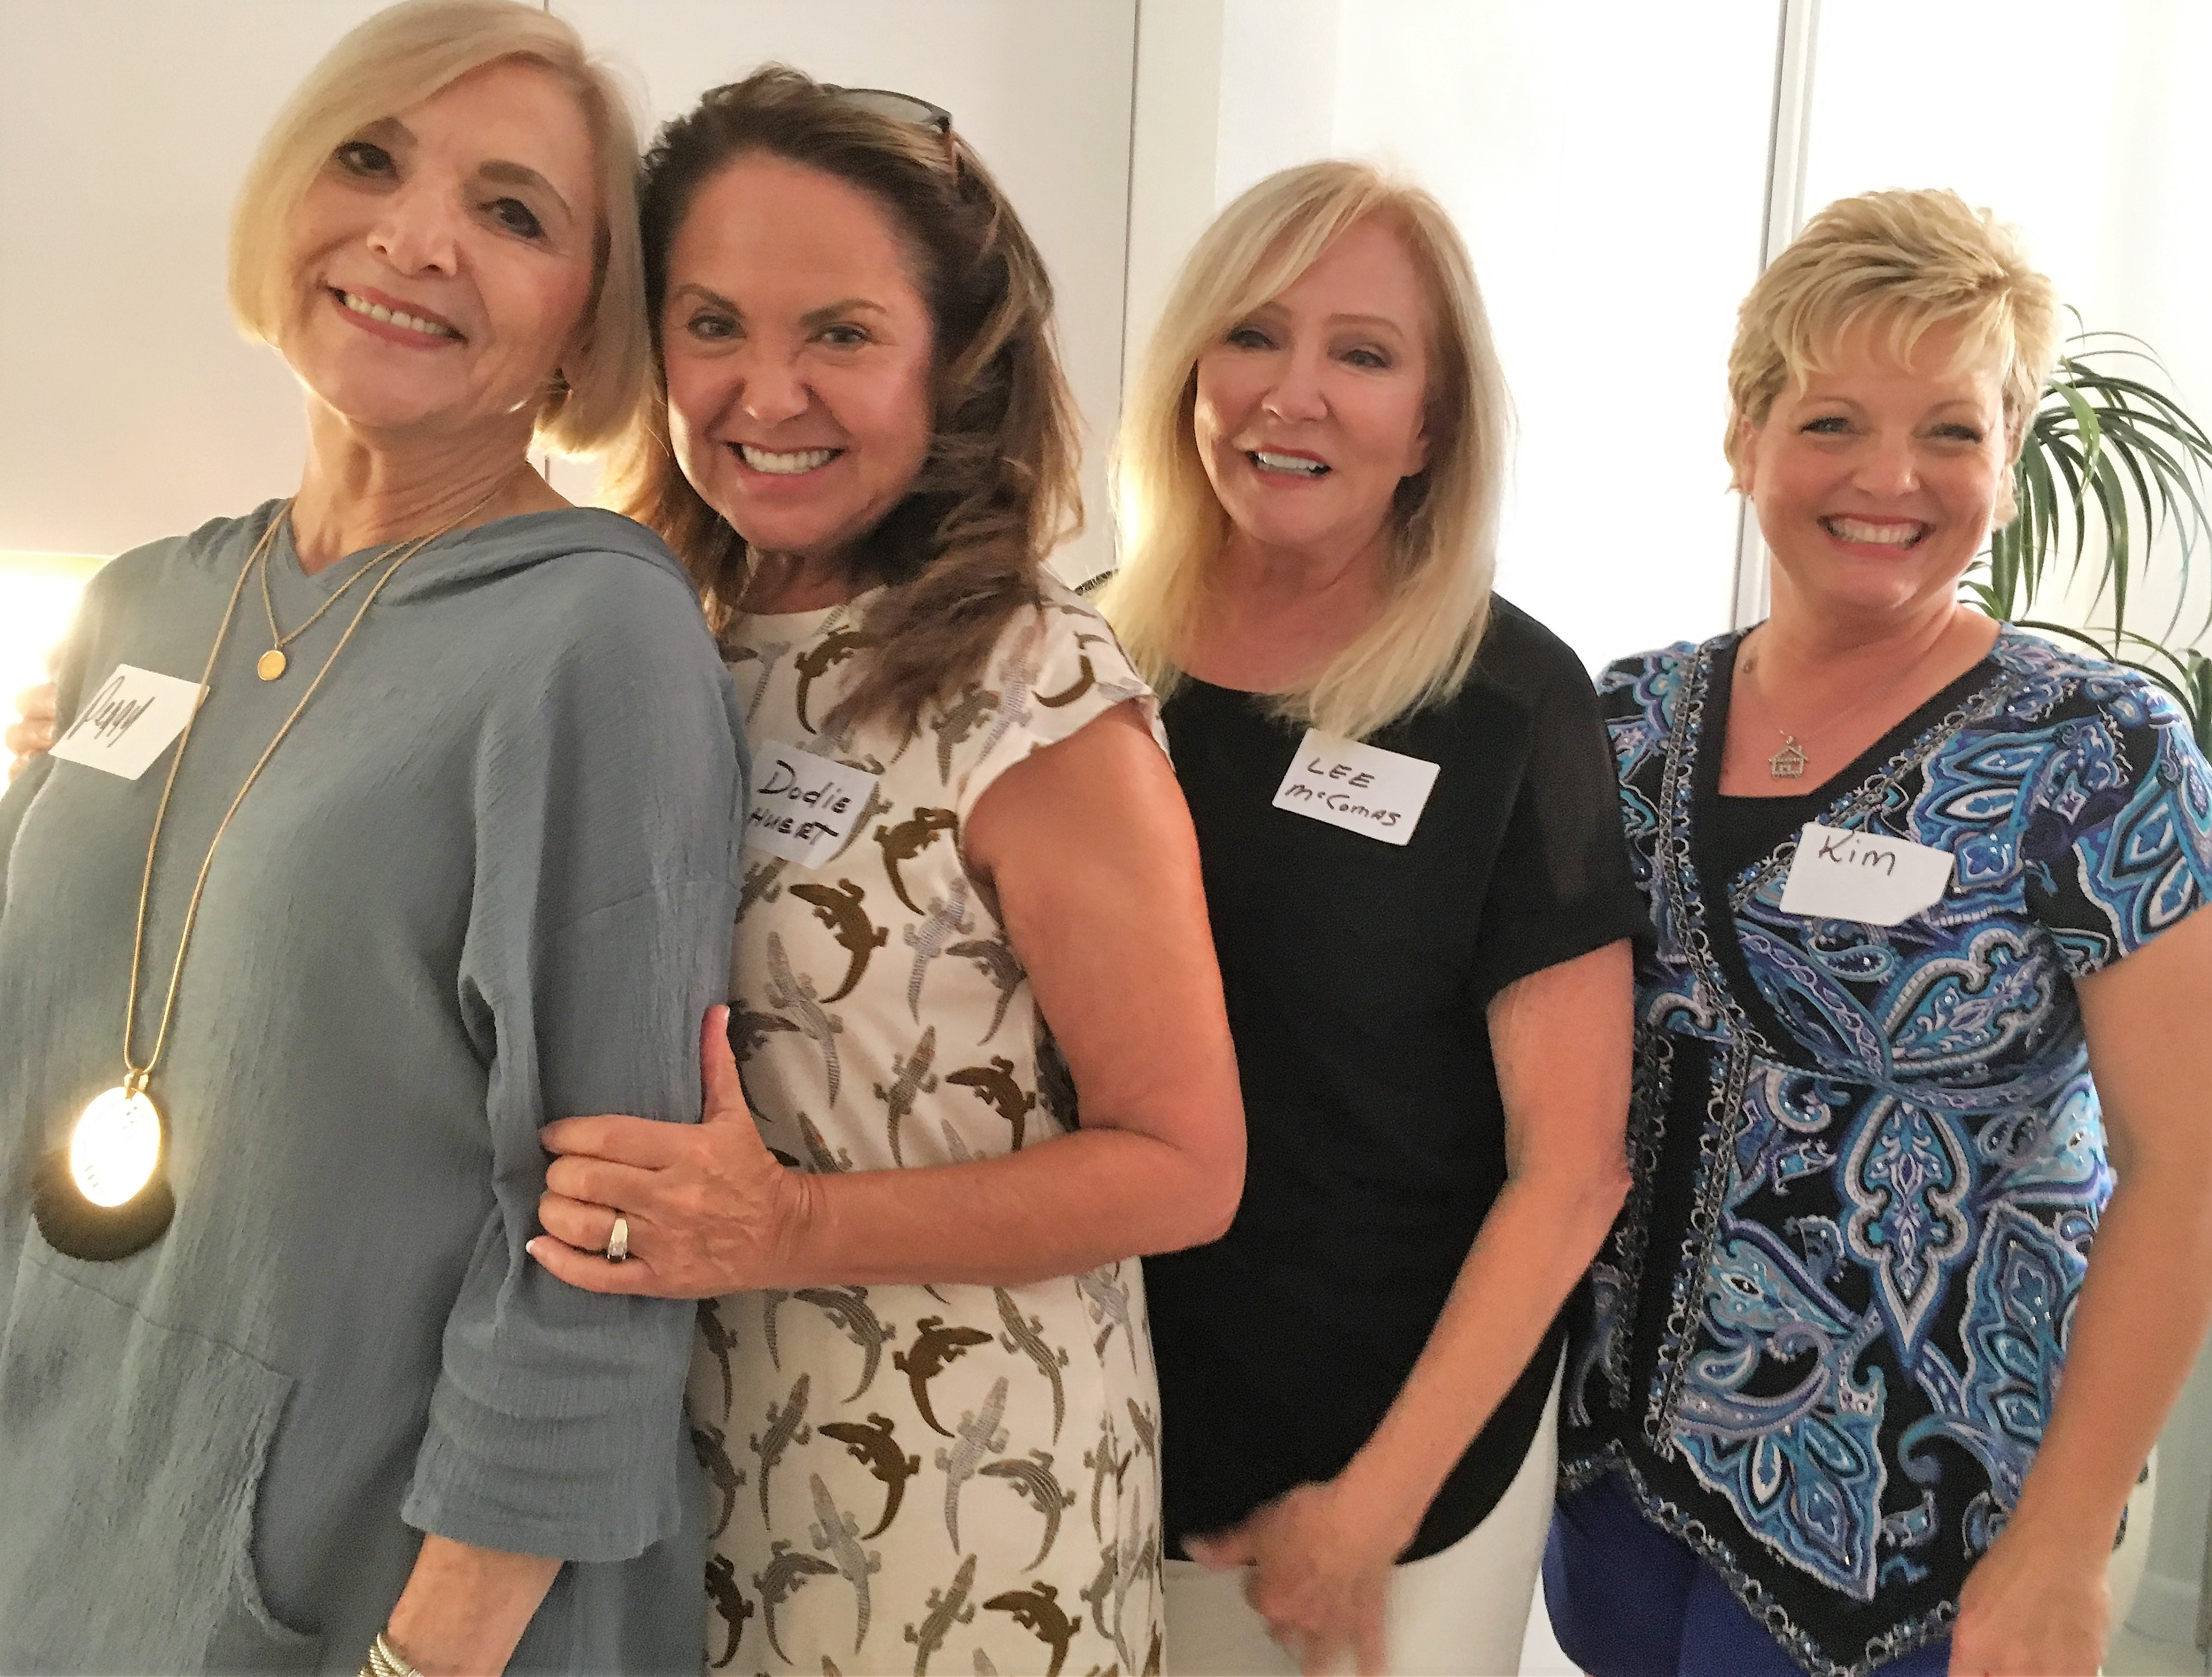 Peggy Fainelli, Dodie Shuert, Lee McComas and Kim Lege also enjoyed the September Mix and Mingle.